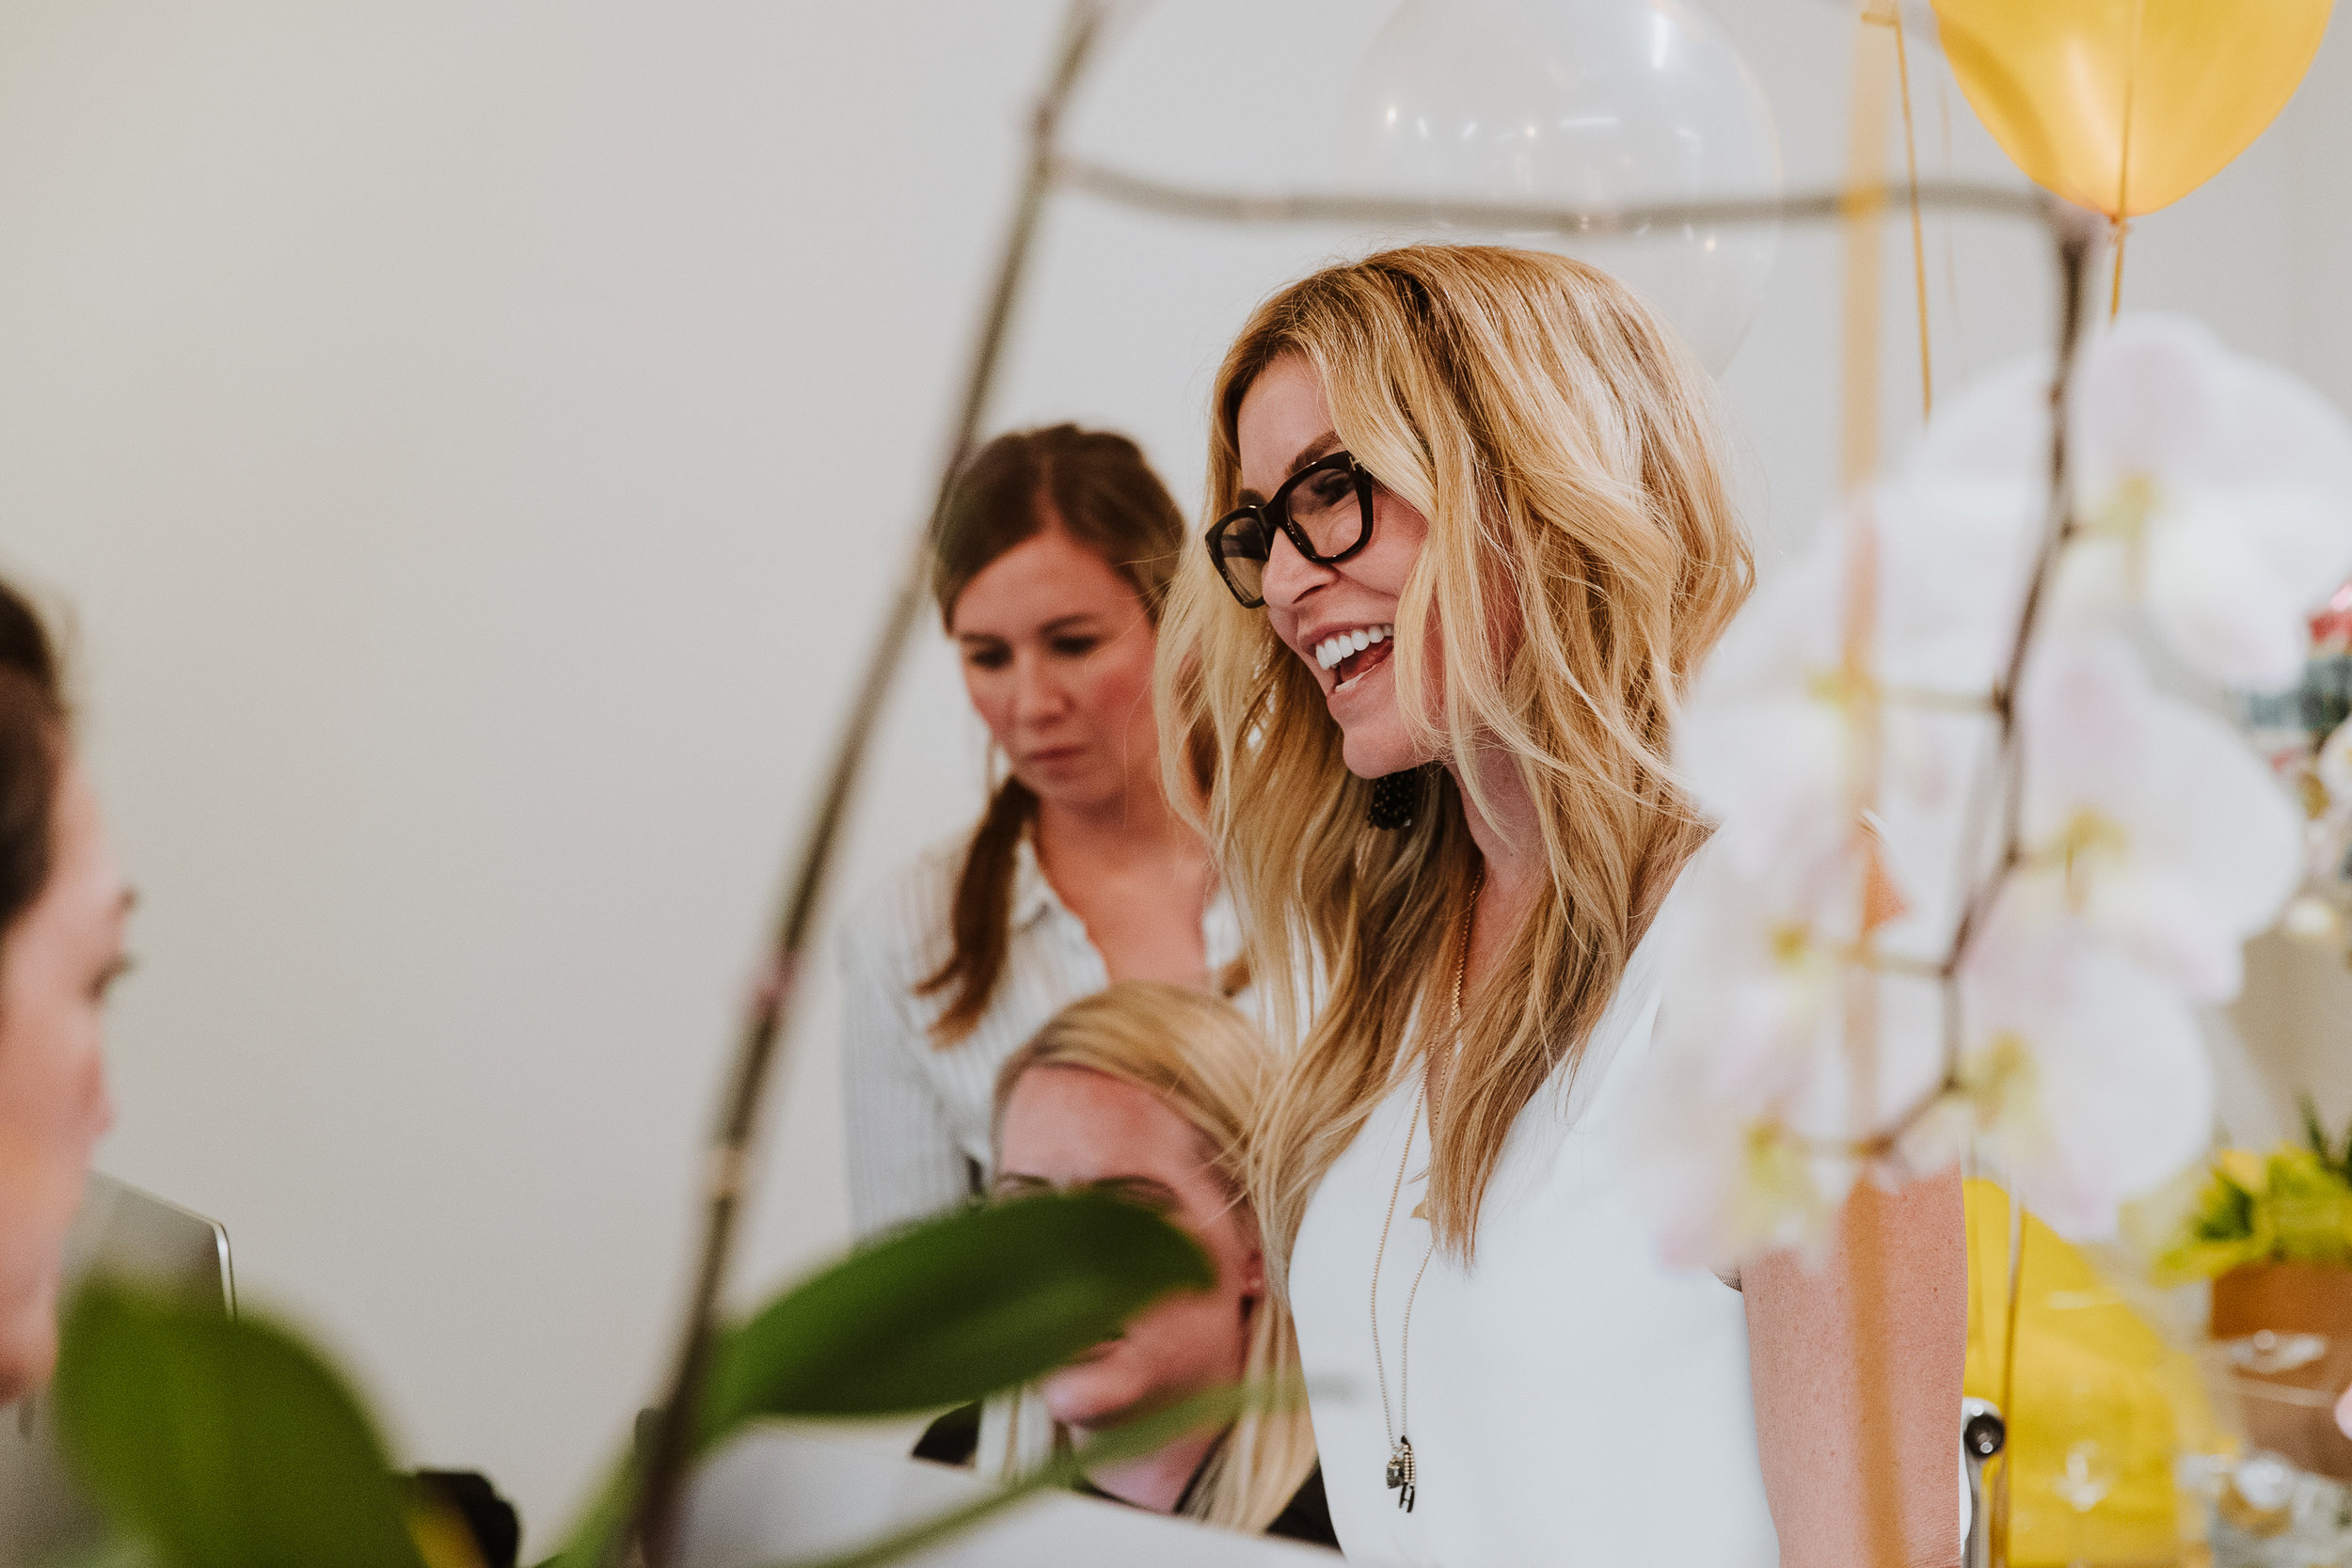 """""""I absolutely LOVE this place"""" - … The feel, the service and the team members! It's so beautiful and cozy. Natalie is my go-to for anything and everything related to skincare options, services and insight. Nat knows exactly what she's doing with my face and I love her. I guarantee you and yours will too!"""